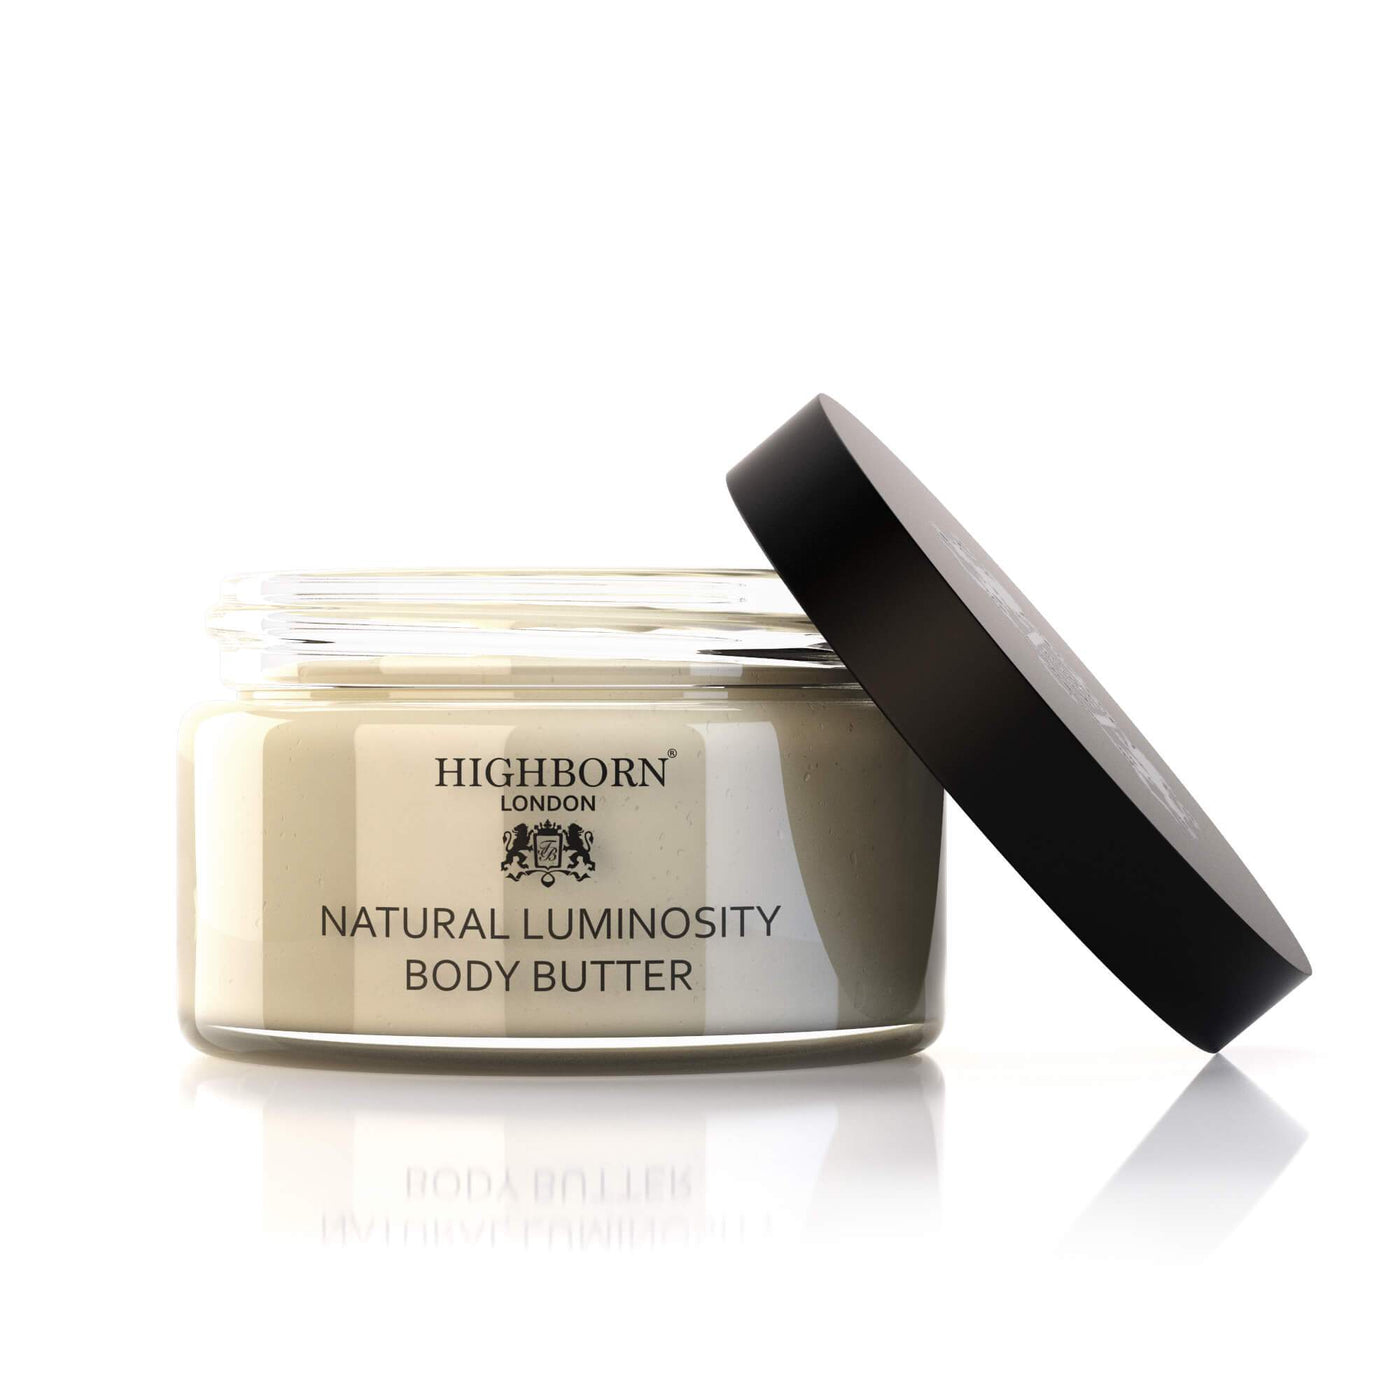 Natural Luminosity Body Butter (220g) Skincare Highborn London